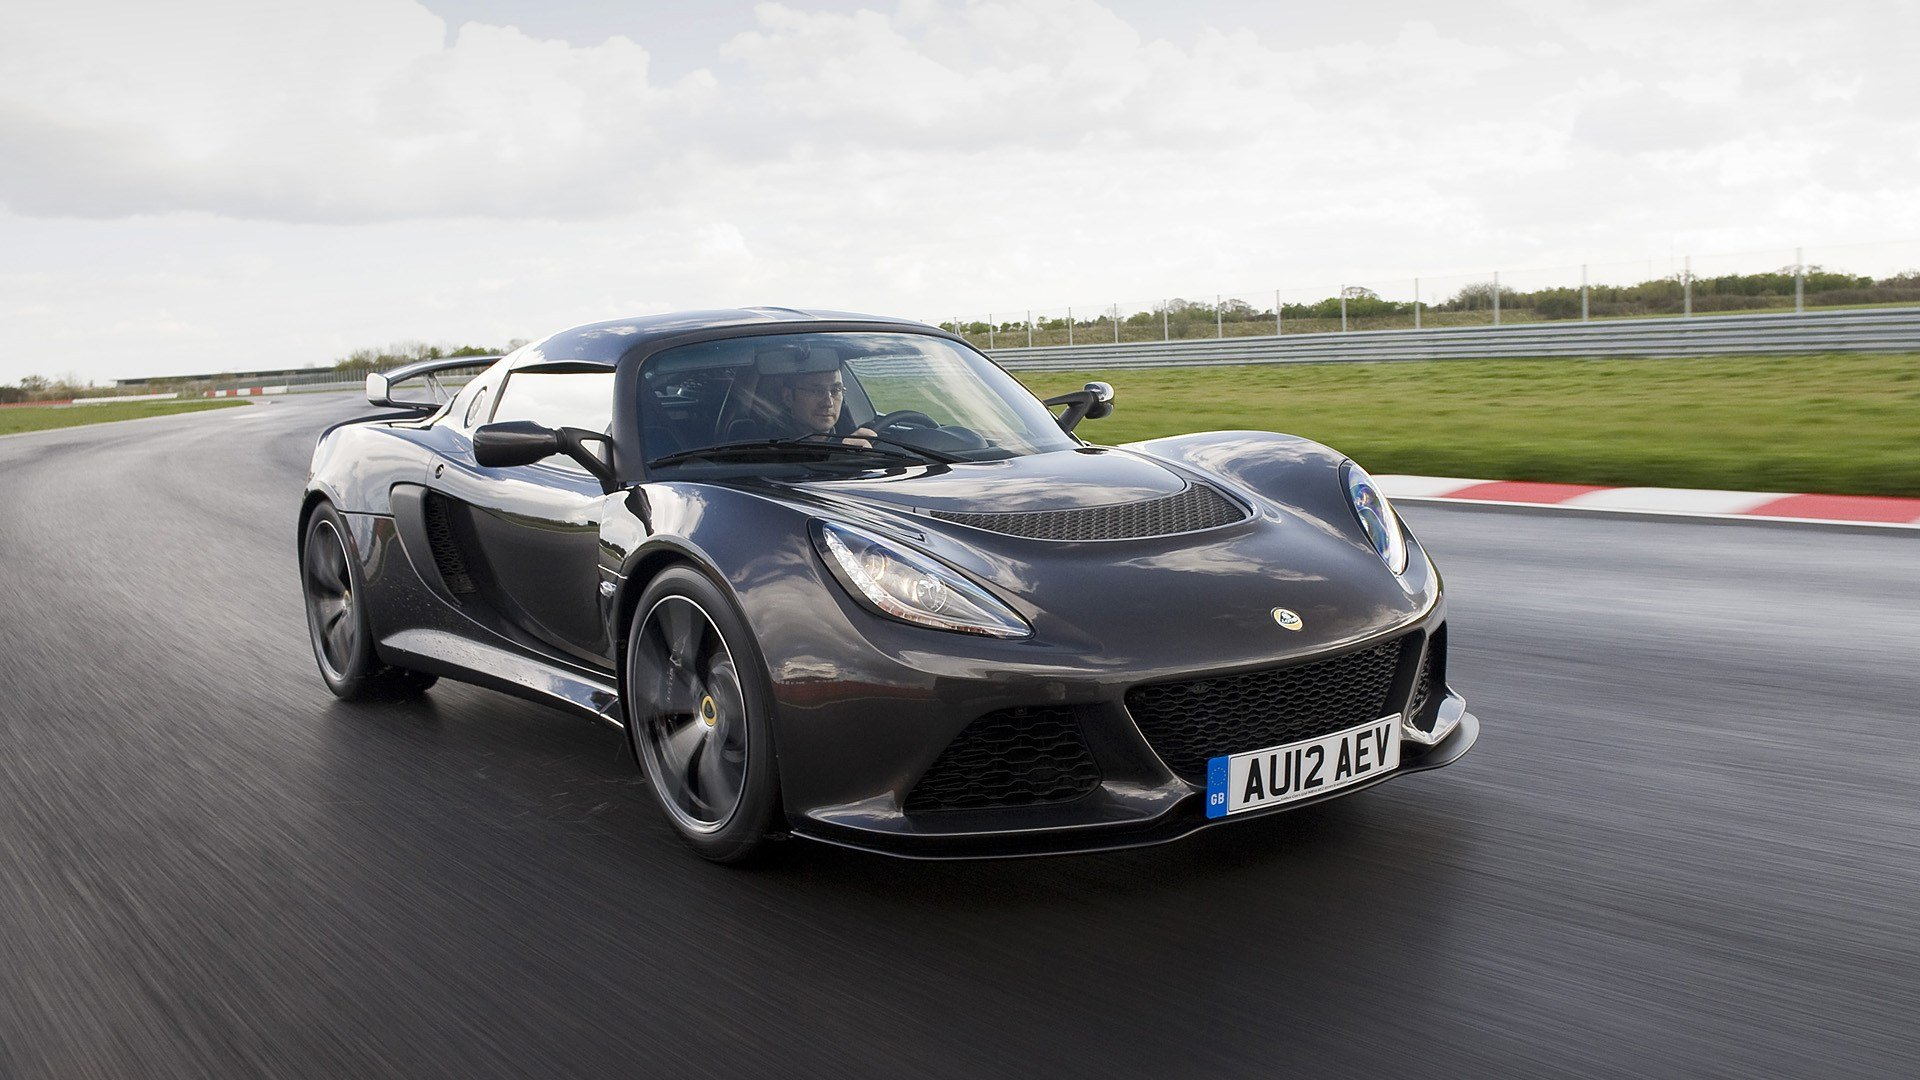 Latest 2012 Lotus Exige S Wallpapers Hd Images Wsupercars Free Download